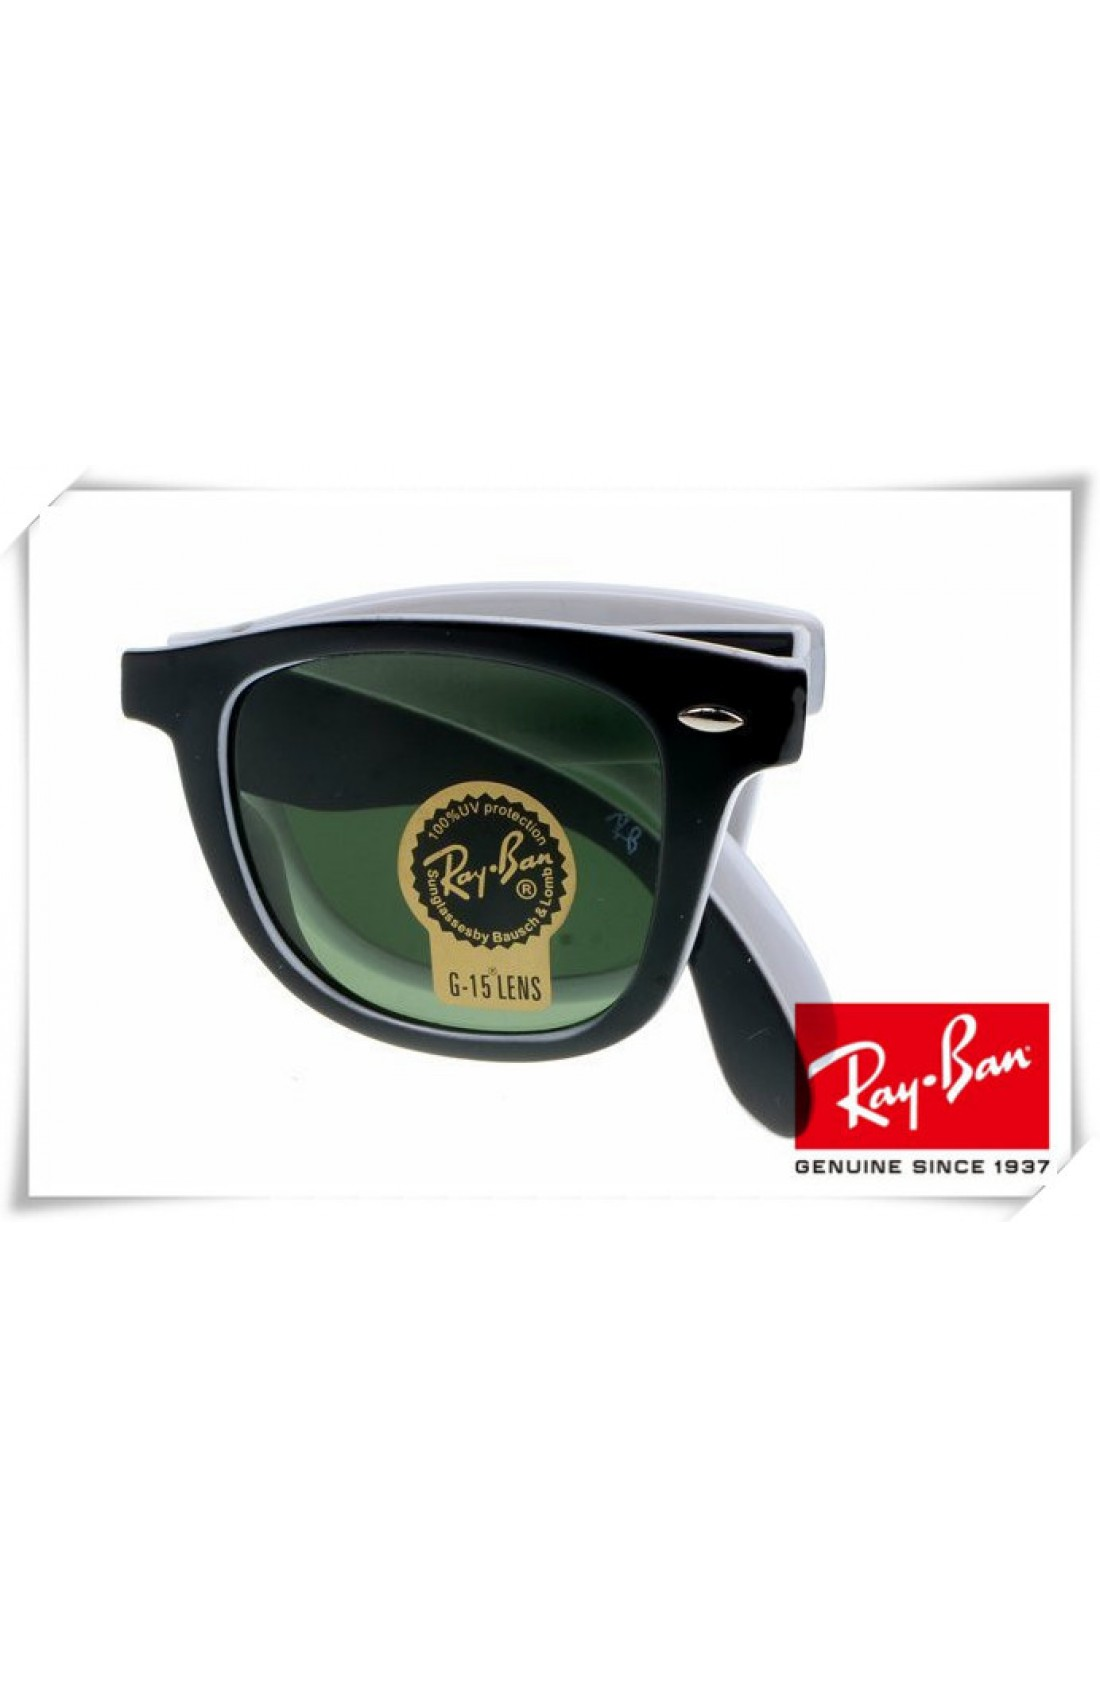 044163159d Cheap Ray Ban RB4105 Folding Wayfarer Sunglasses Black White Frame ...